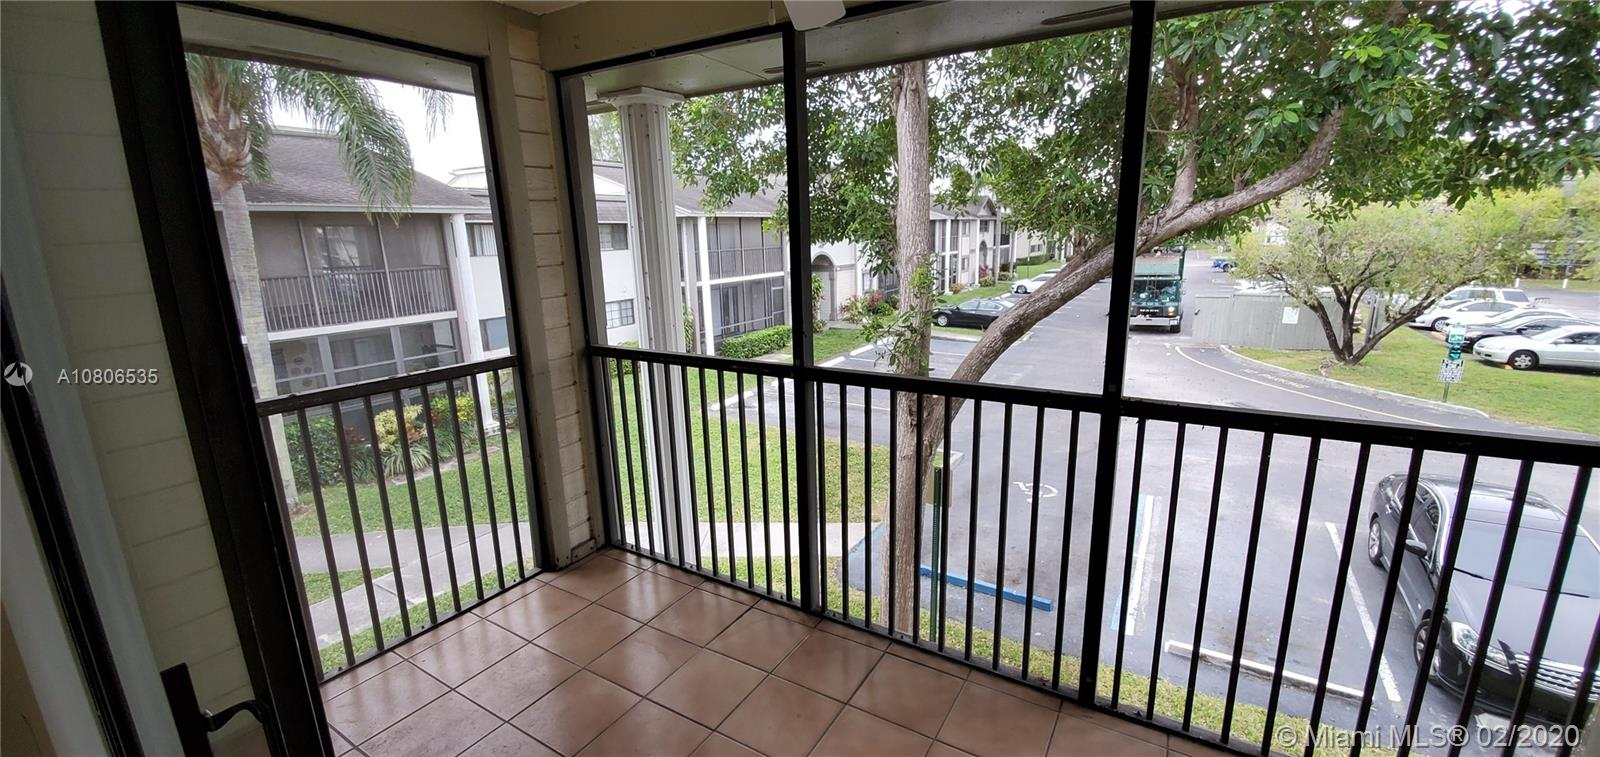 20681 NE 4th Pl # 205, Miami, Florida 33179, 2 Bedrooms Bedrooms, ,2 BathroomsBathrooms,Residential Lease,For Rent,20681 NE 4th Pl # 205,A10806535